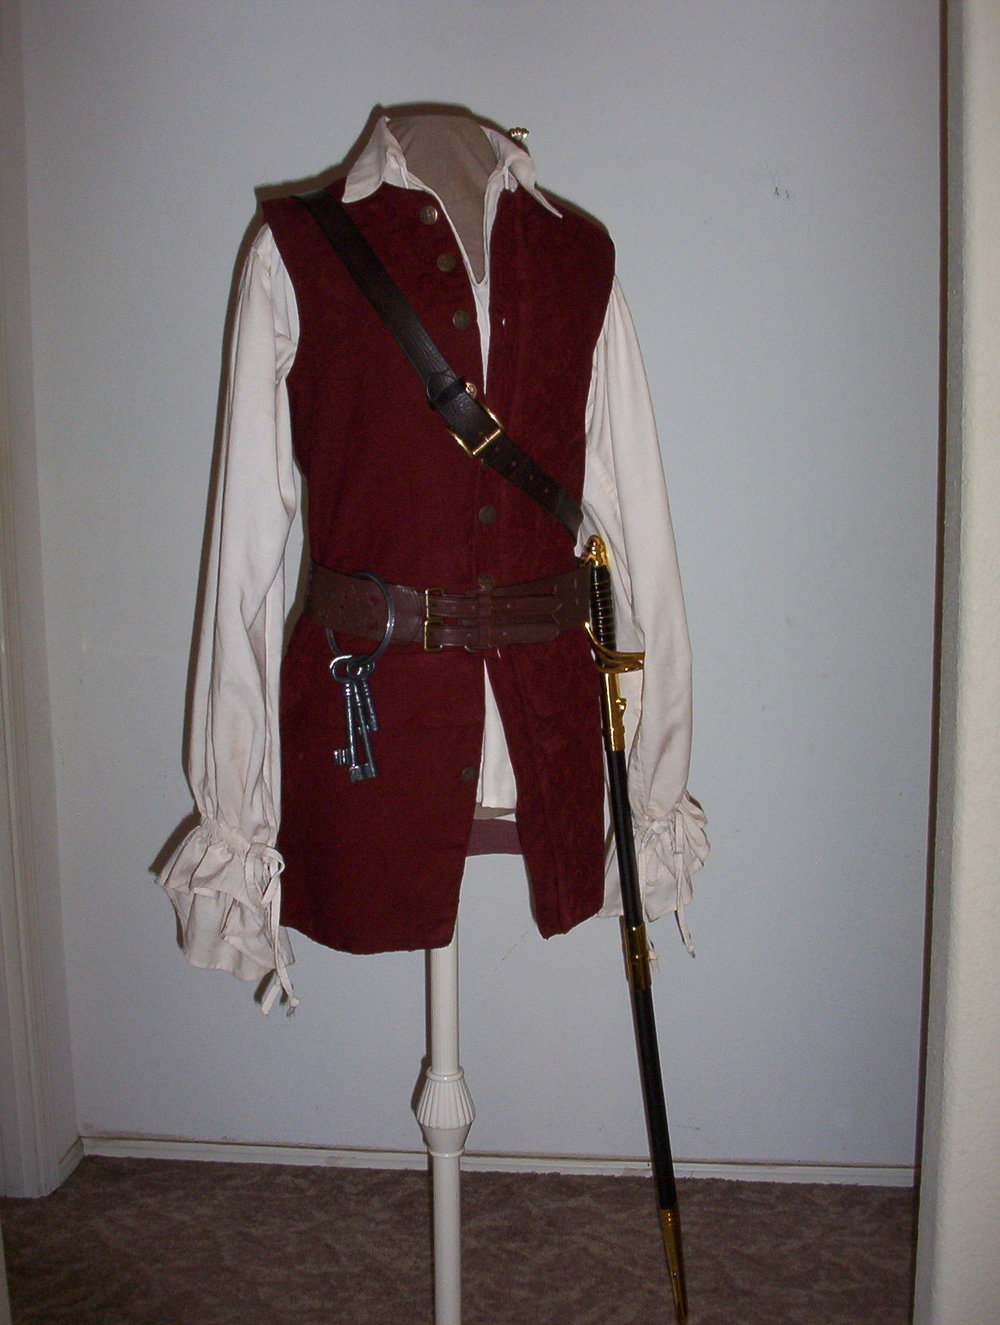 Pirate costume2 021.jpg